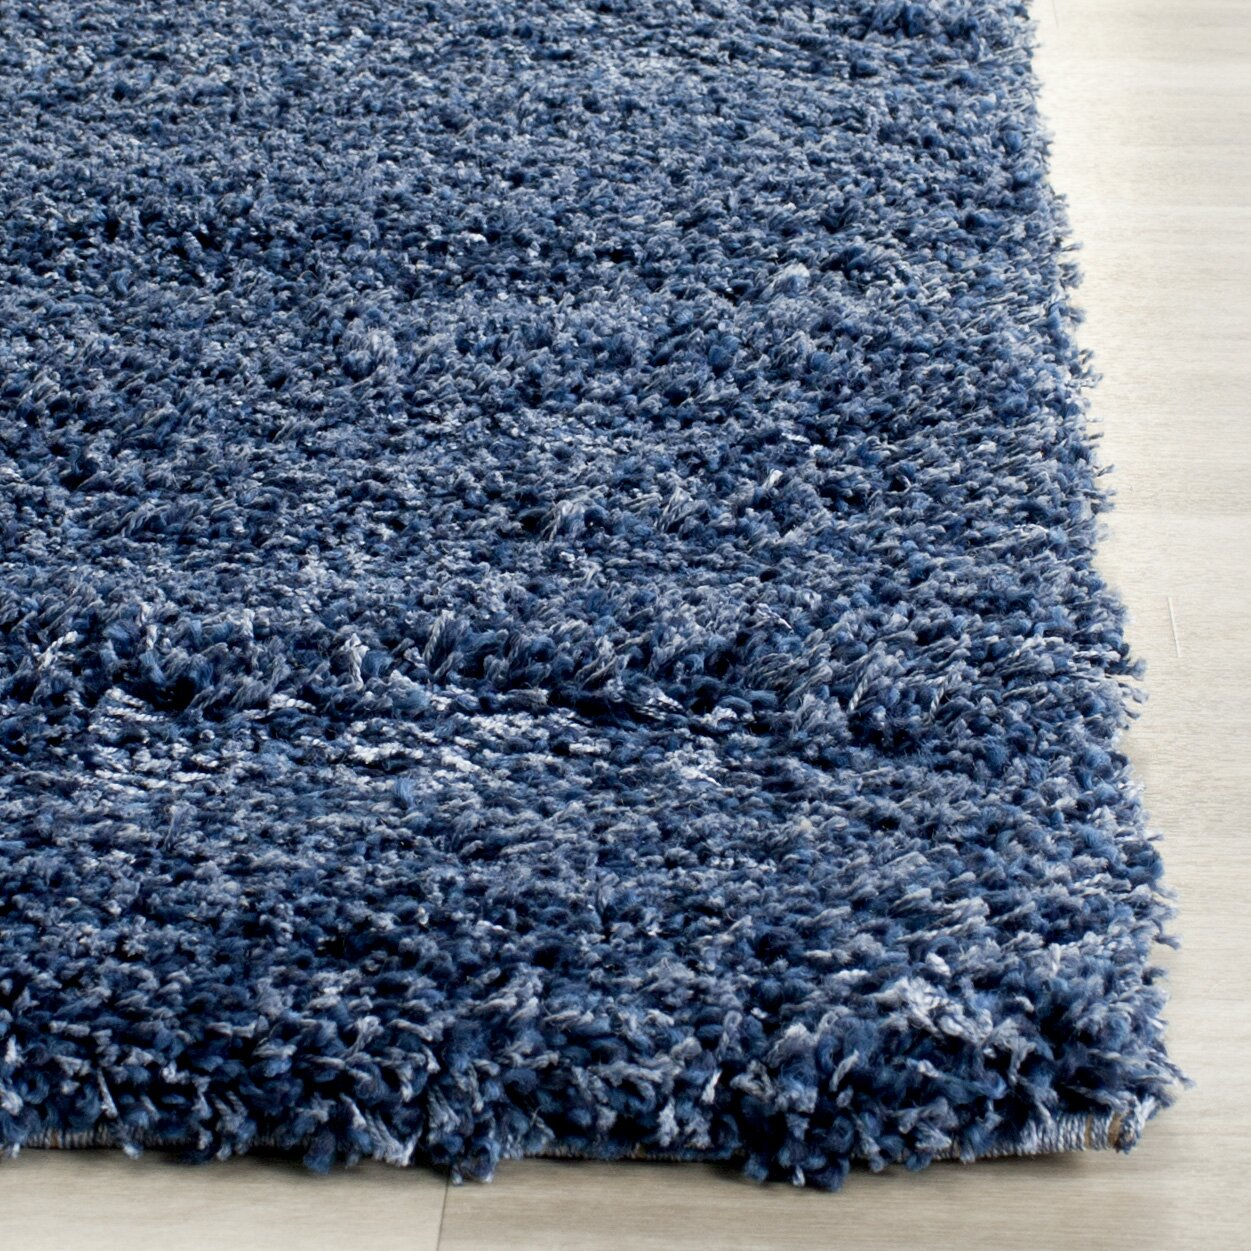 Safavieh Shag Navy Blue Solid Rug amp Reviews Wayfair : Safavieh Shag Navy Solid Rug SG151 7070 from www.wayfair.com size 1251 x 1251 jpeg 680kB